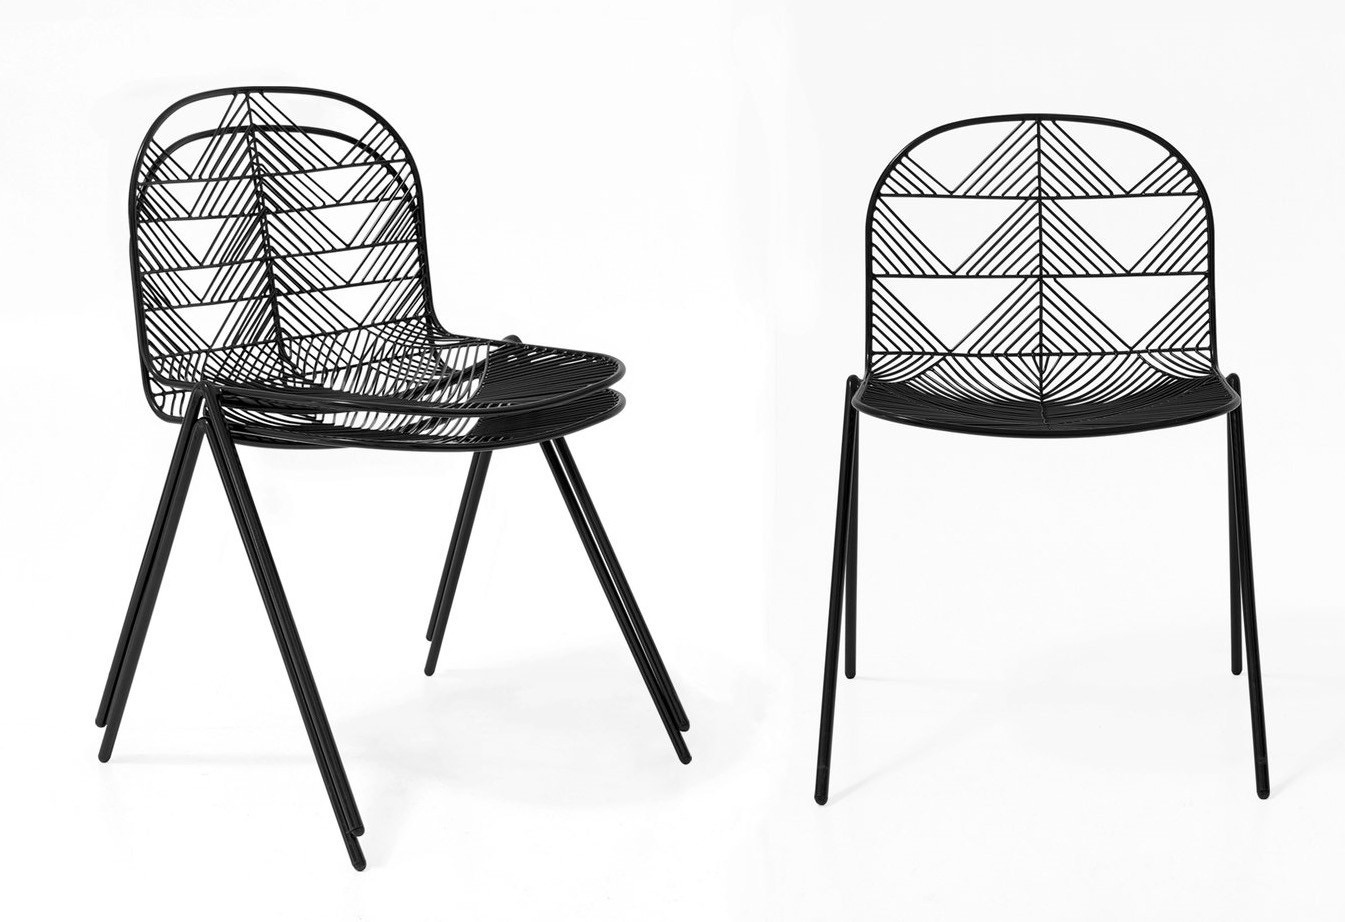 Bend Goods The Betty Stacking Chair